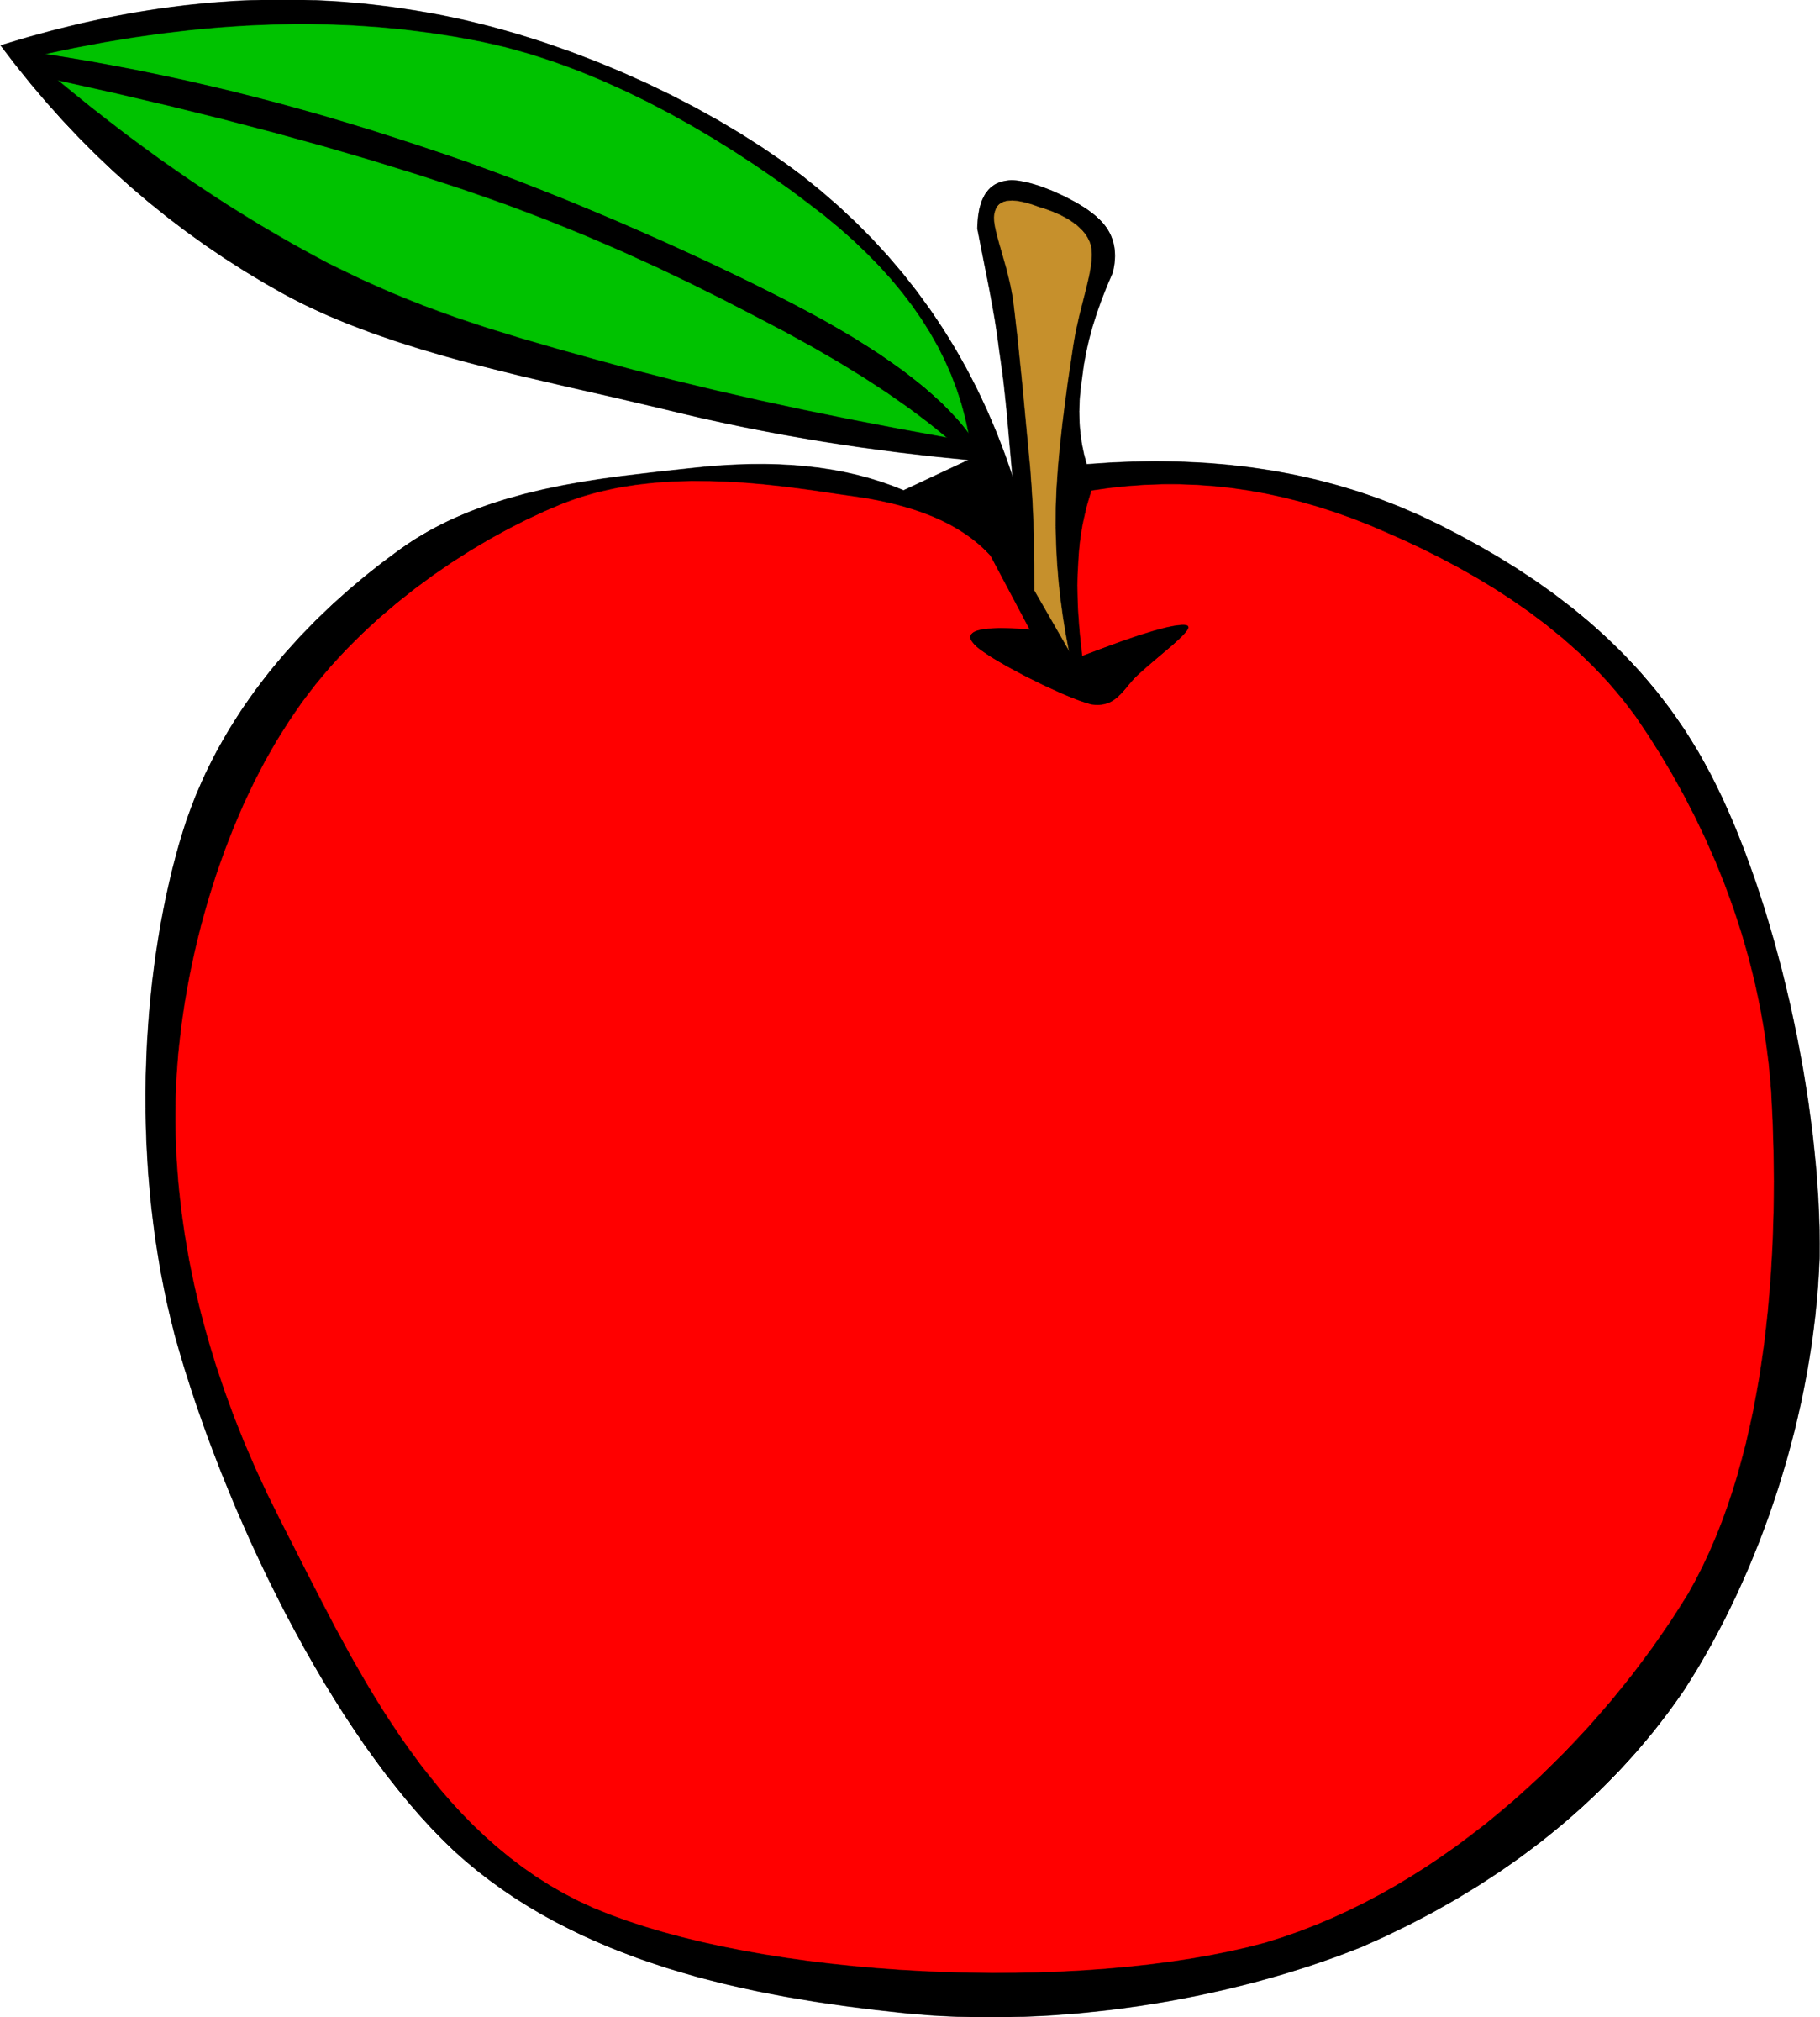 Microsoft office apple clipart